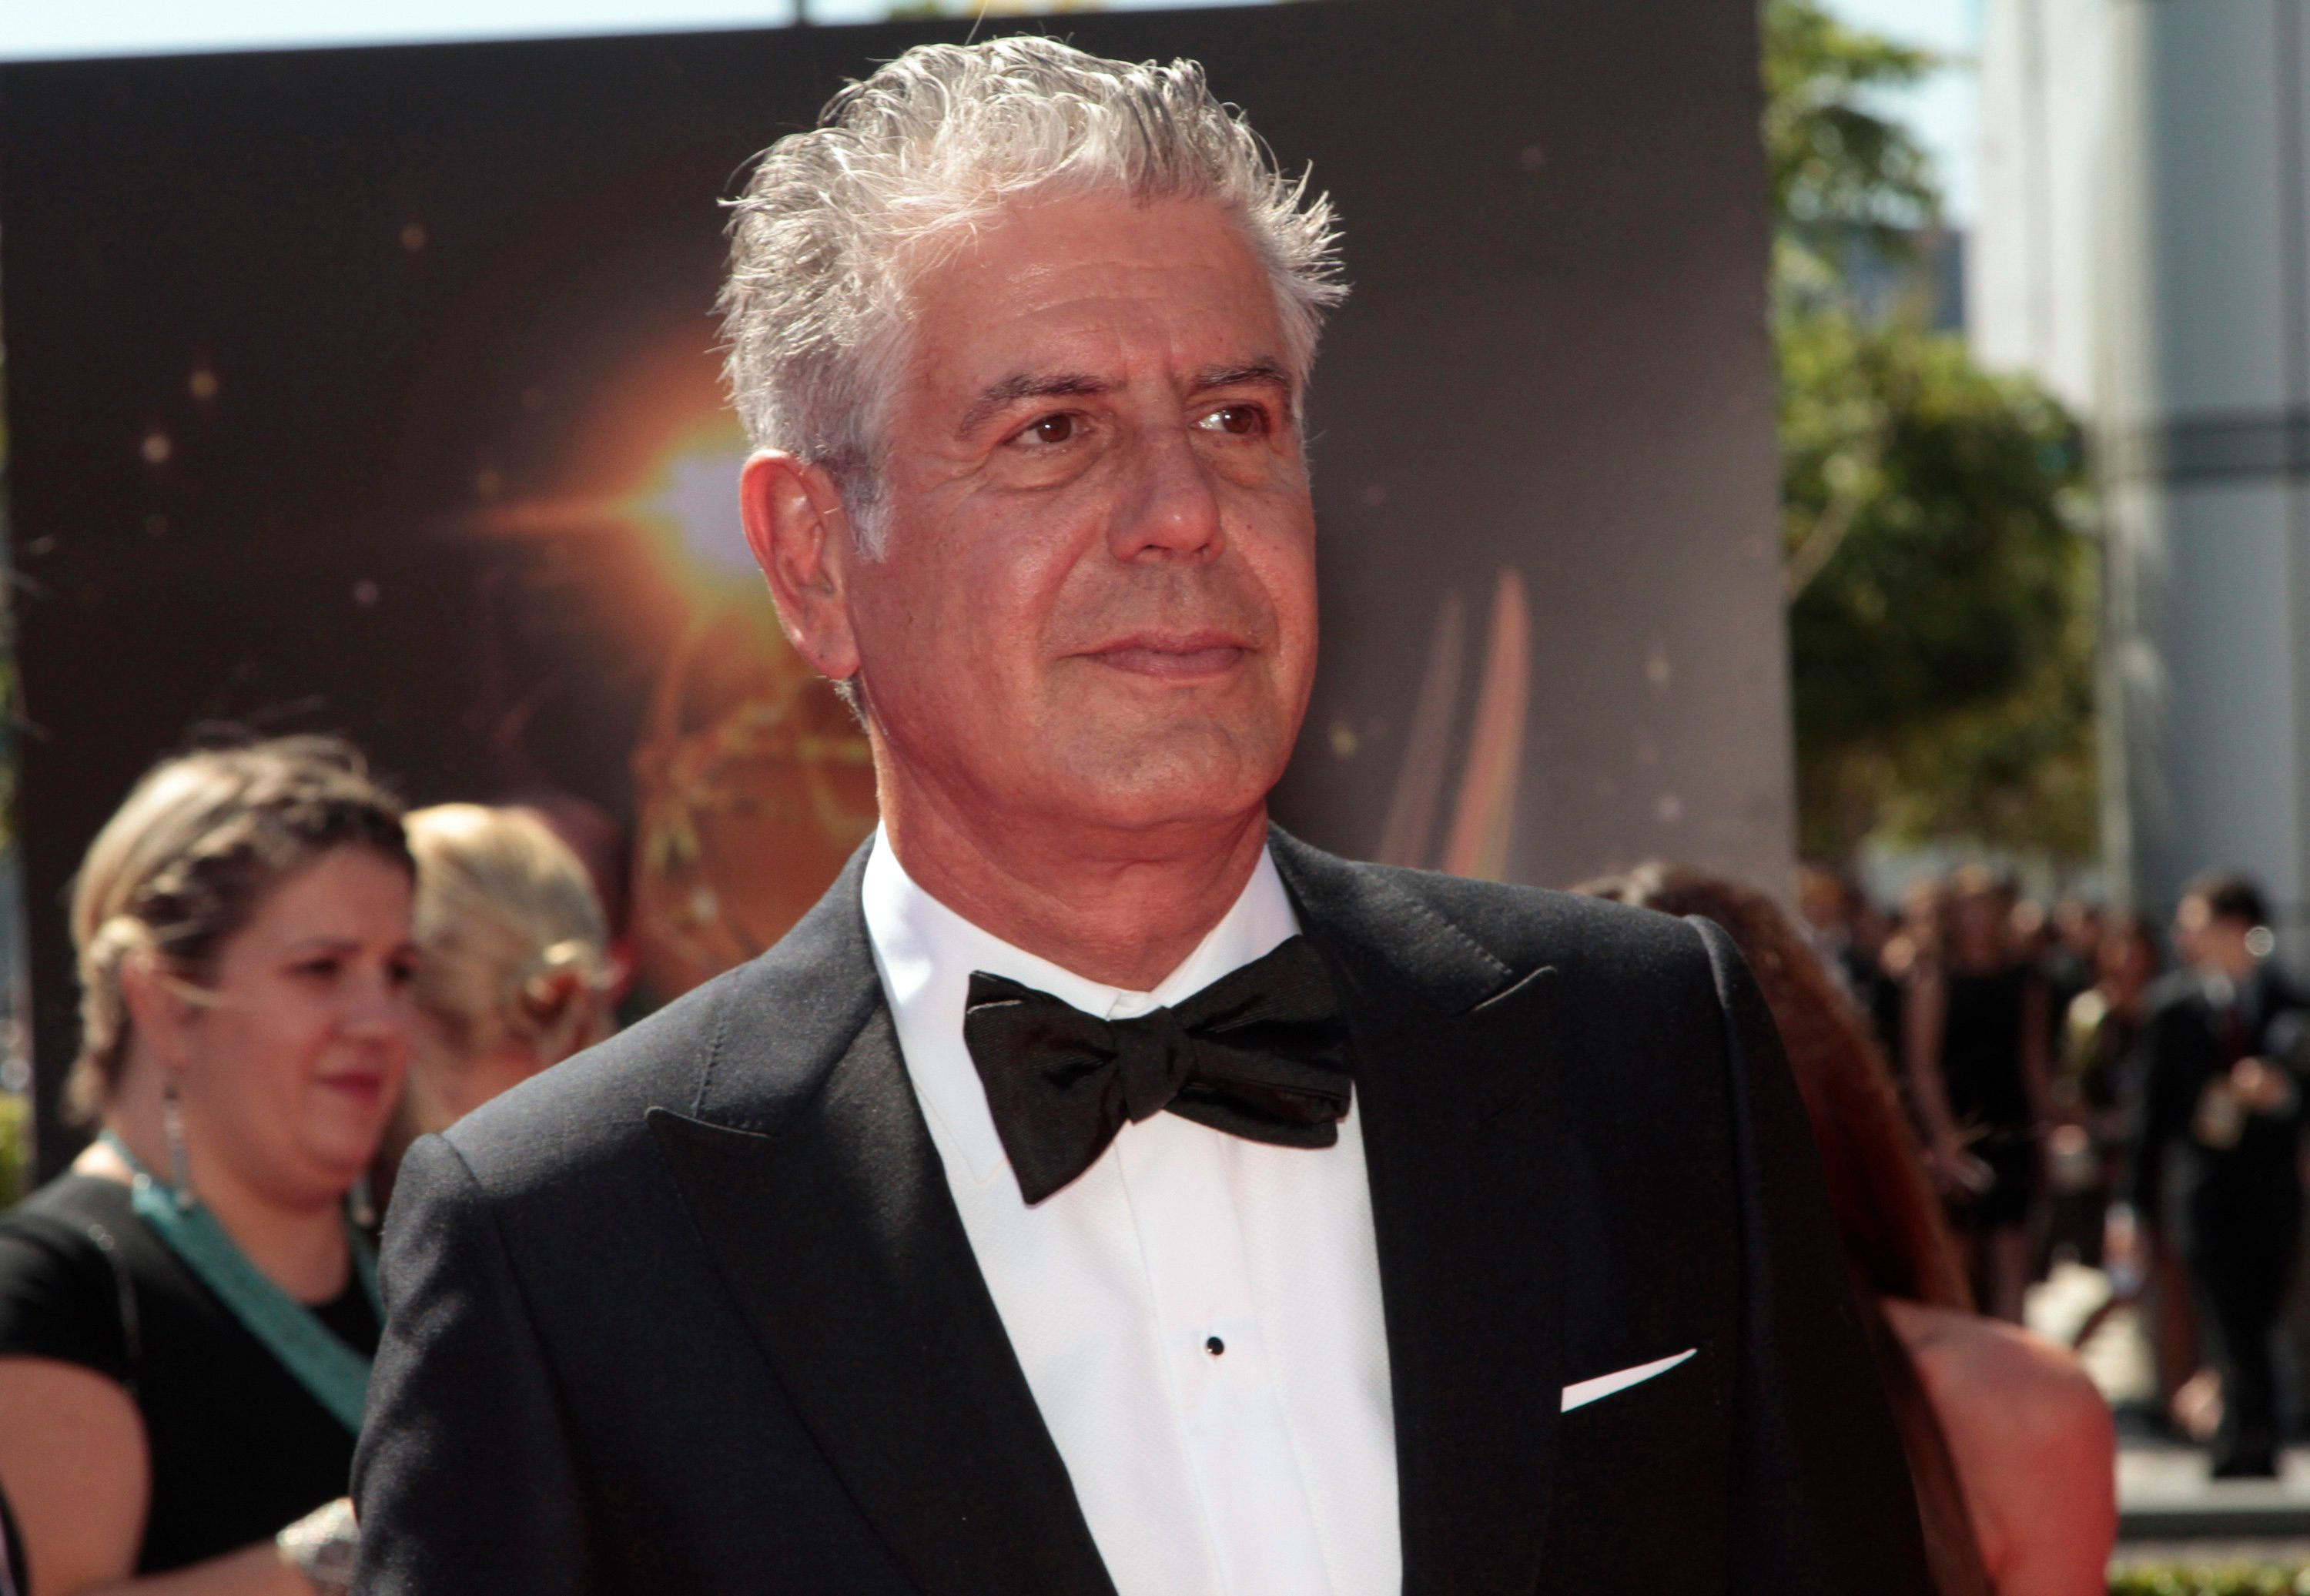 Chef and TV host Anthony Bourdain took his own life in June 2018. As Dr. Stuart Beck said,